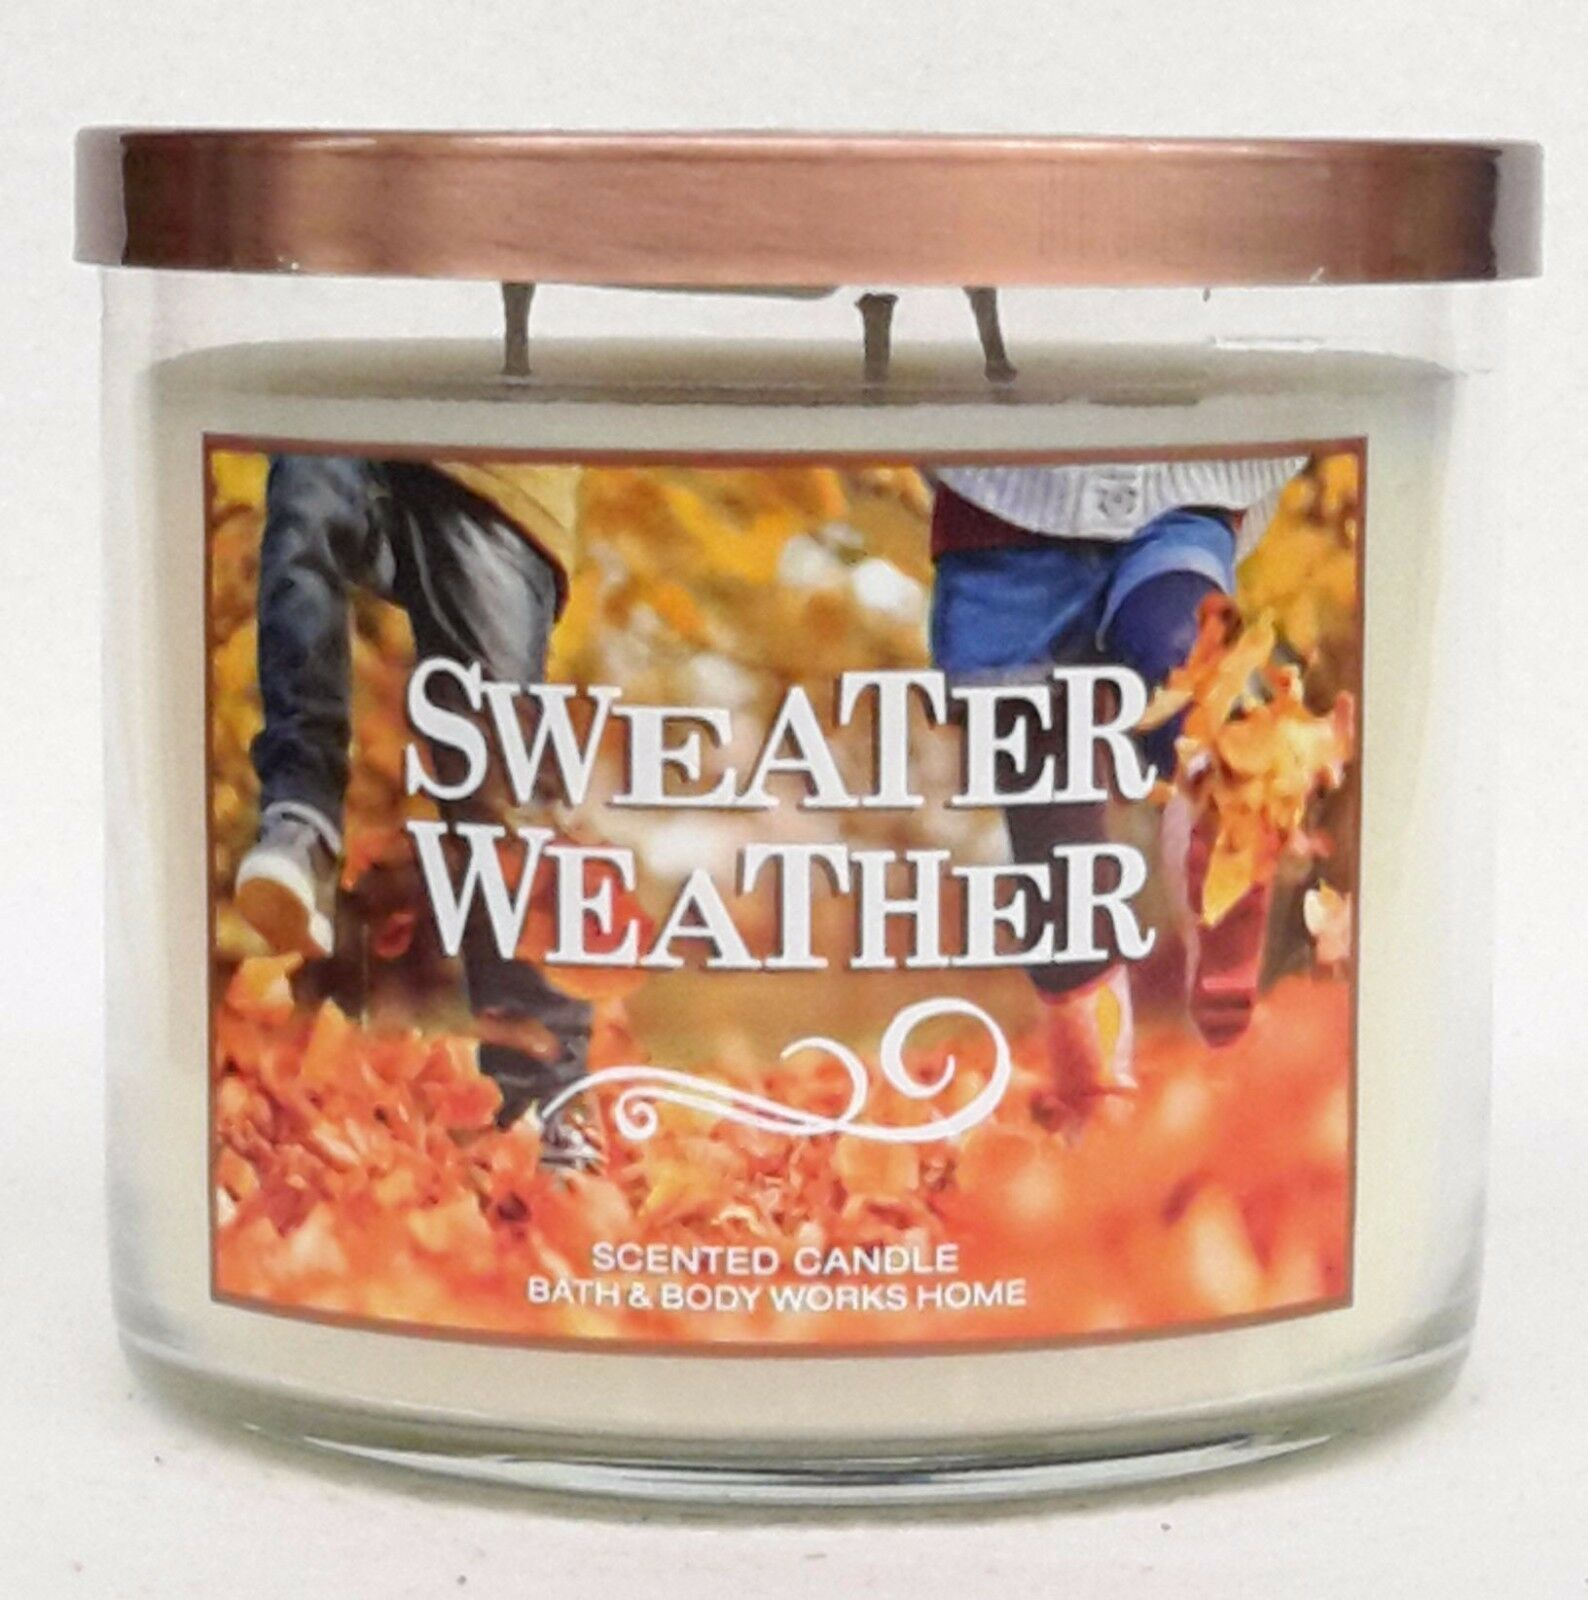 Bath Body Works Sweater Weather 3 Wick 145 Oz Scented Candle